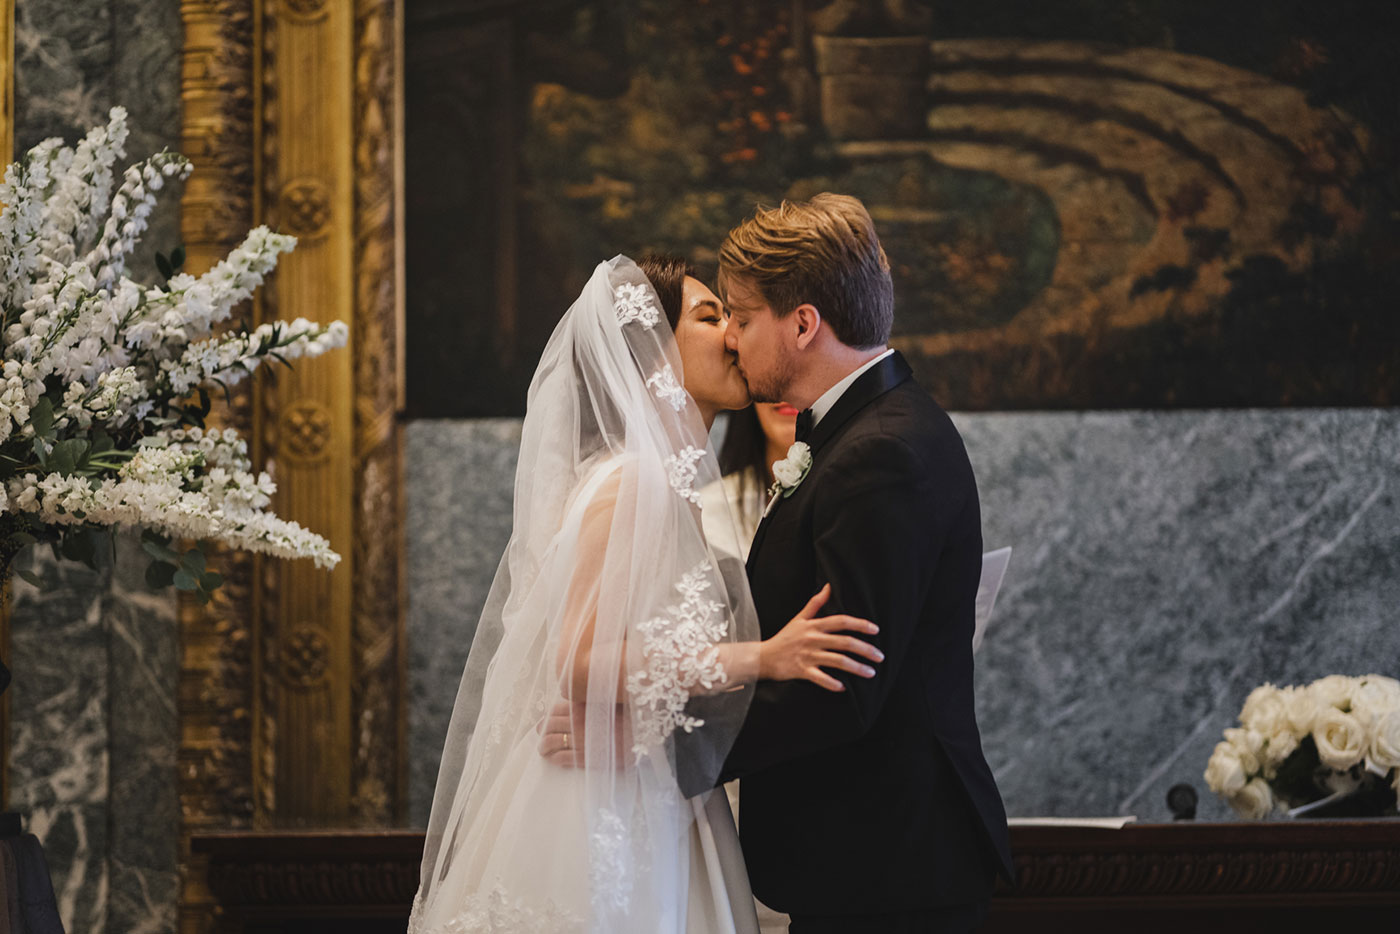 First kiss after ceremony at the James Burden Kahn Mansion by Weddings by Hanel